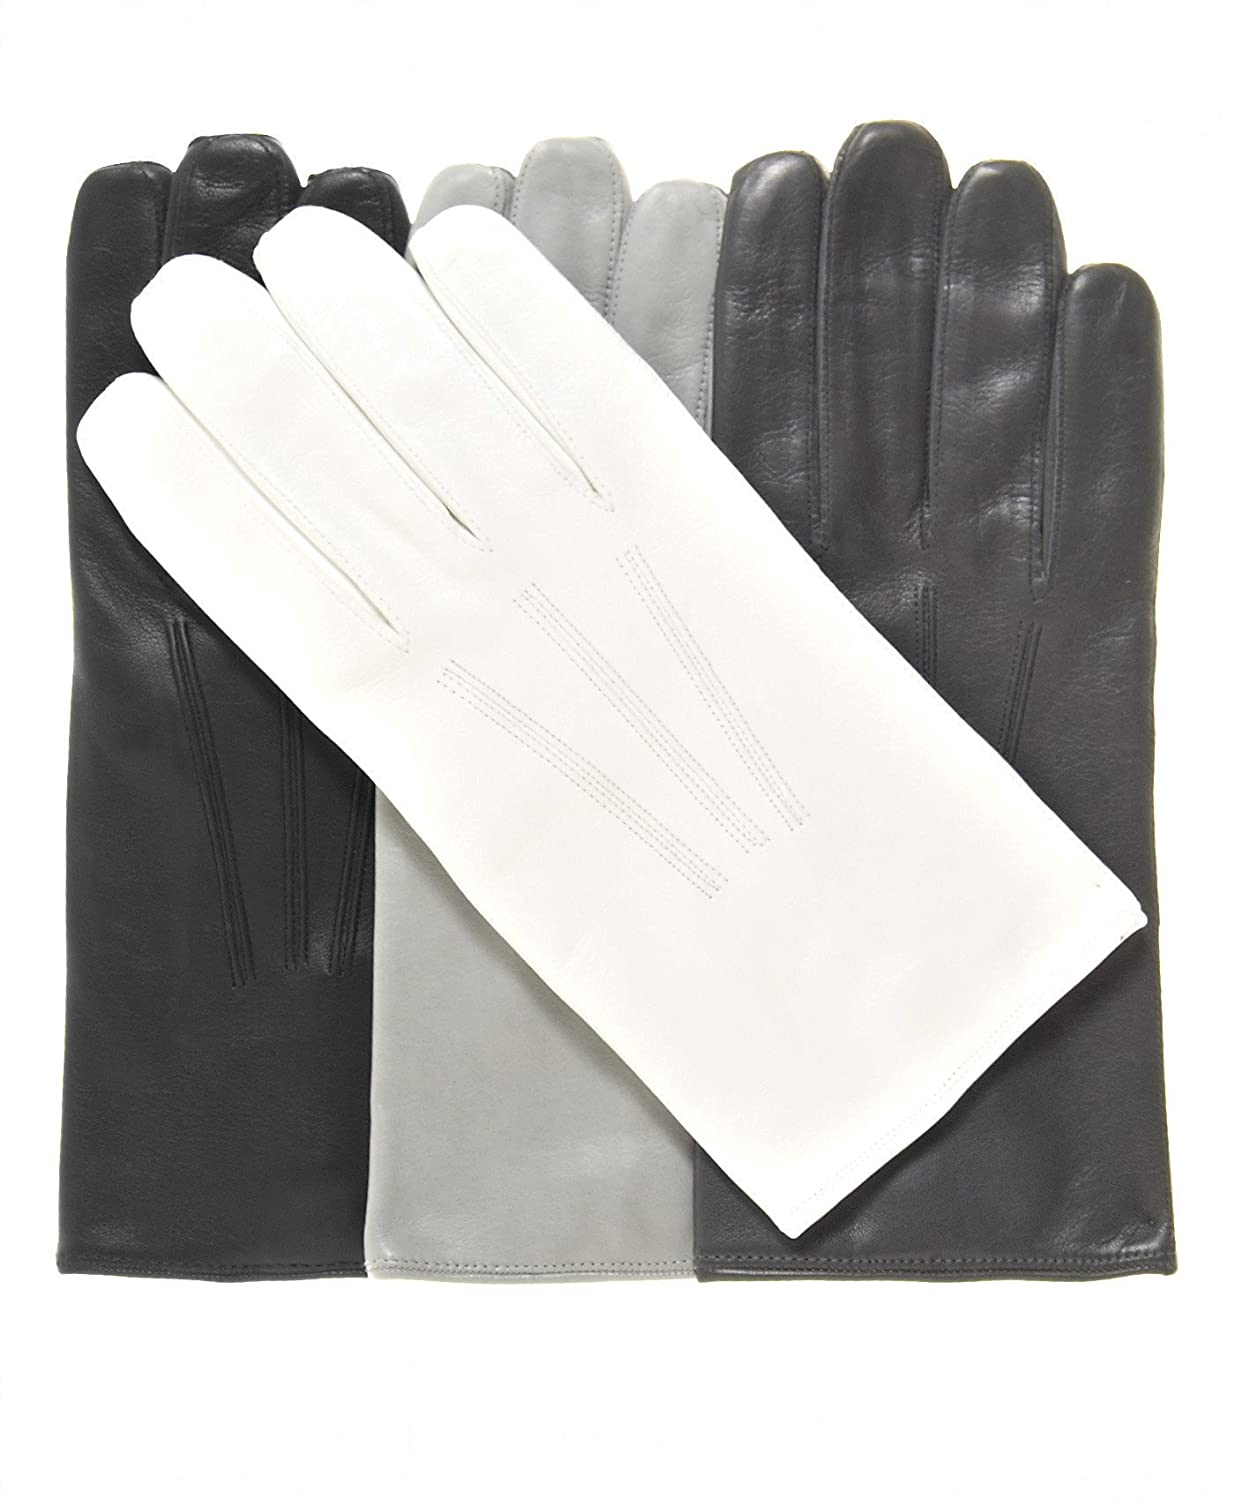 Edwardian Men's Formal Wear Mens Lined Lambskin Leather Gloves with Wrist Snap $99.95 AT vintagedancer.com